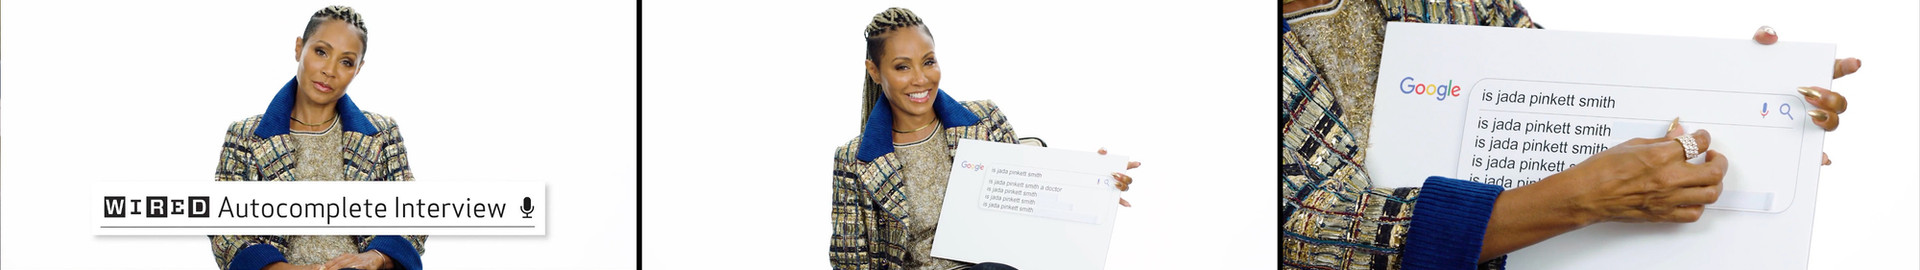 Jada Pinkett Smith Answers the Web's Most Searched Questions   WIRED